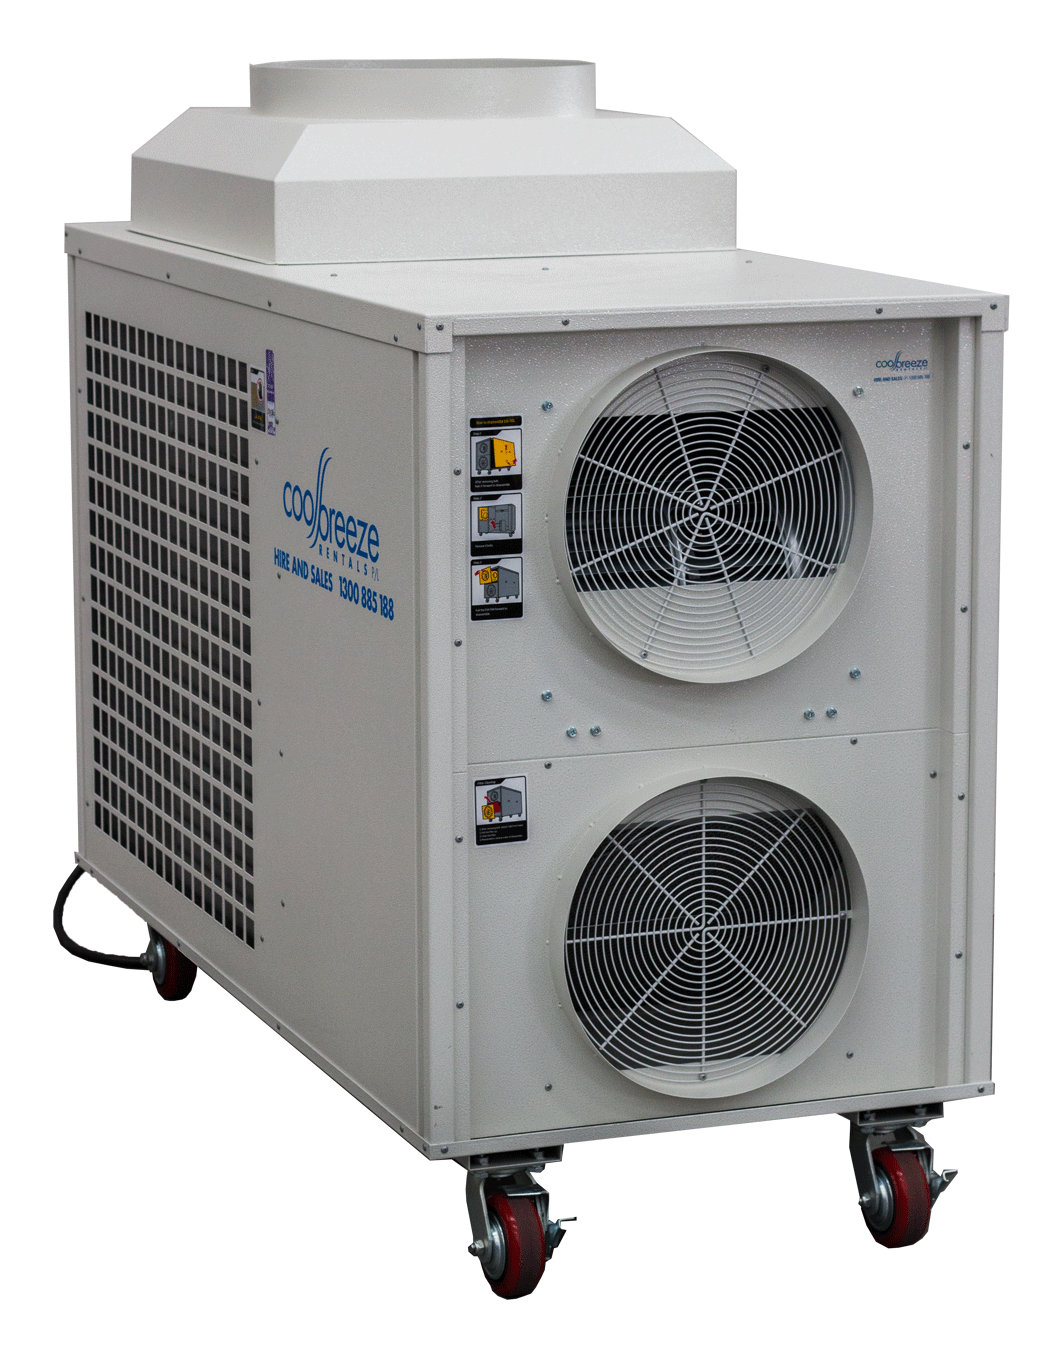 CB20000 21.5kW Portable Spot Cooler